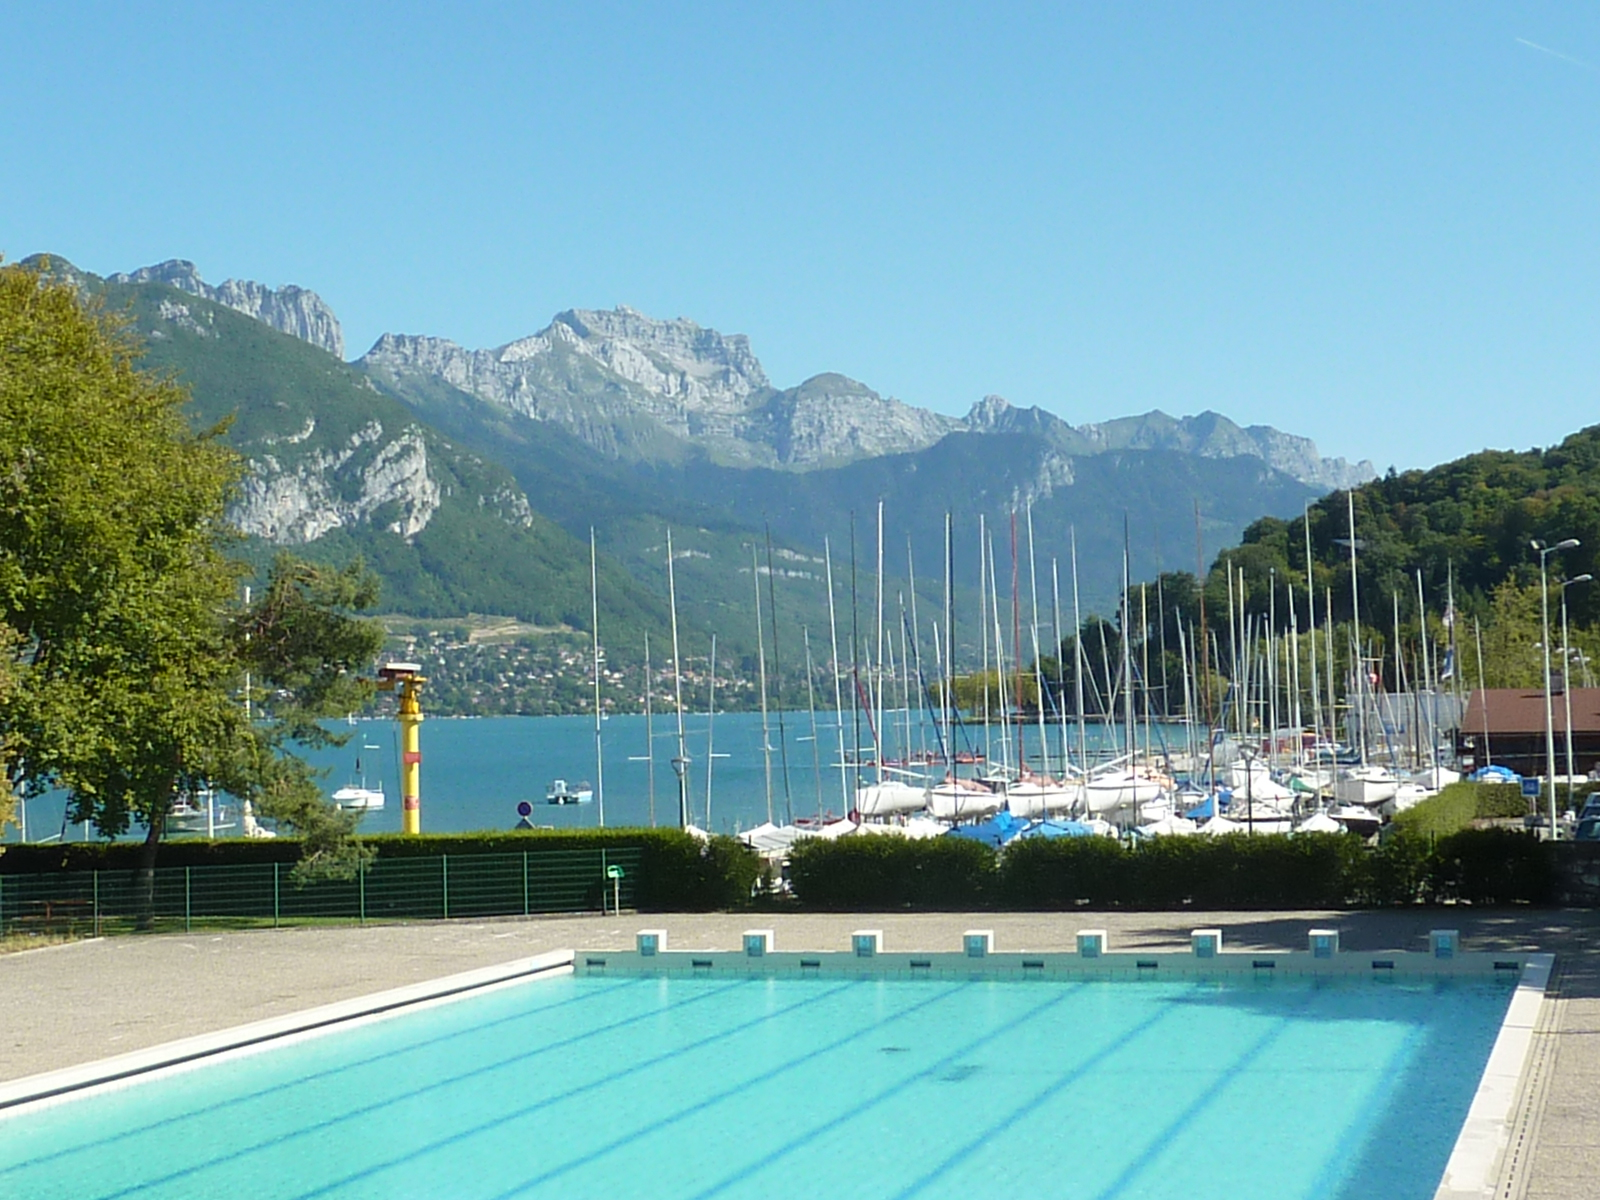 Usagers des piscines agglo annecy up2a for Piscine a annecy